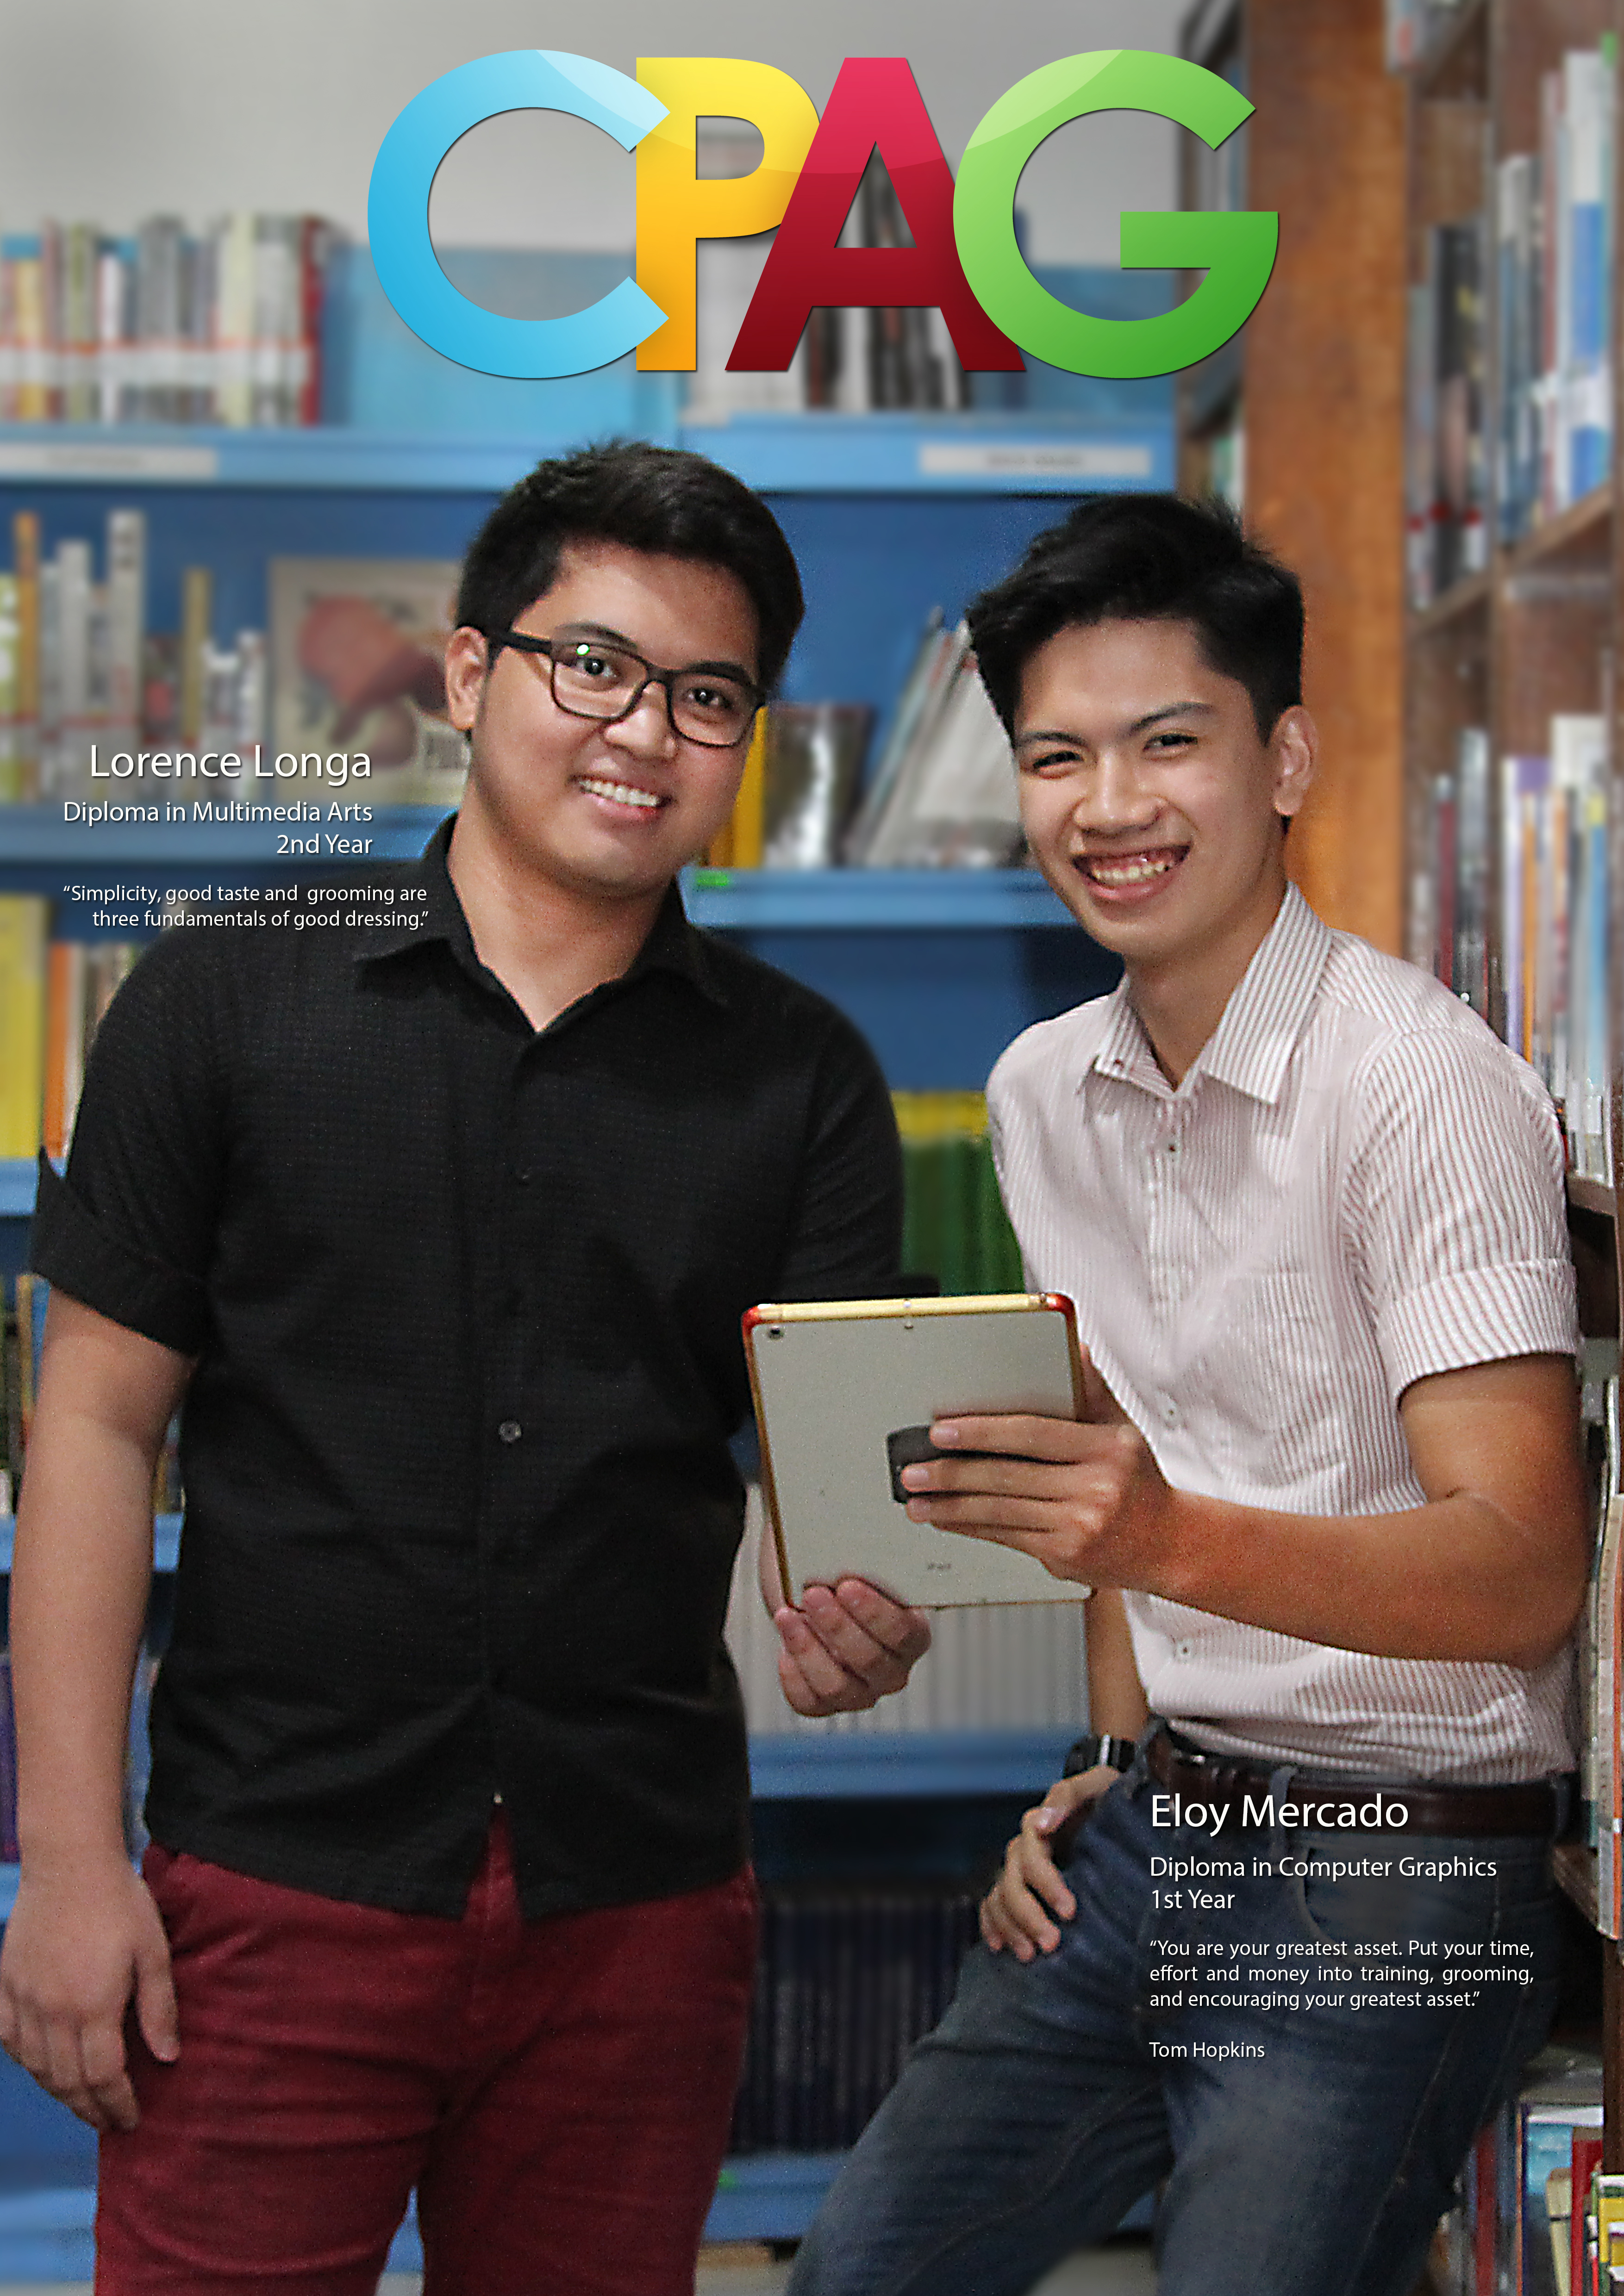 cpag campaign: students at the library